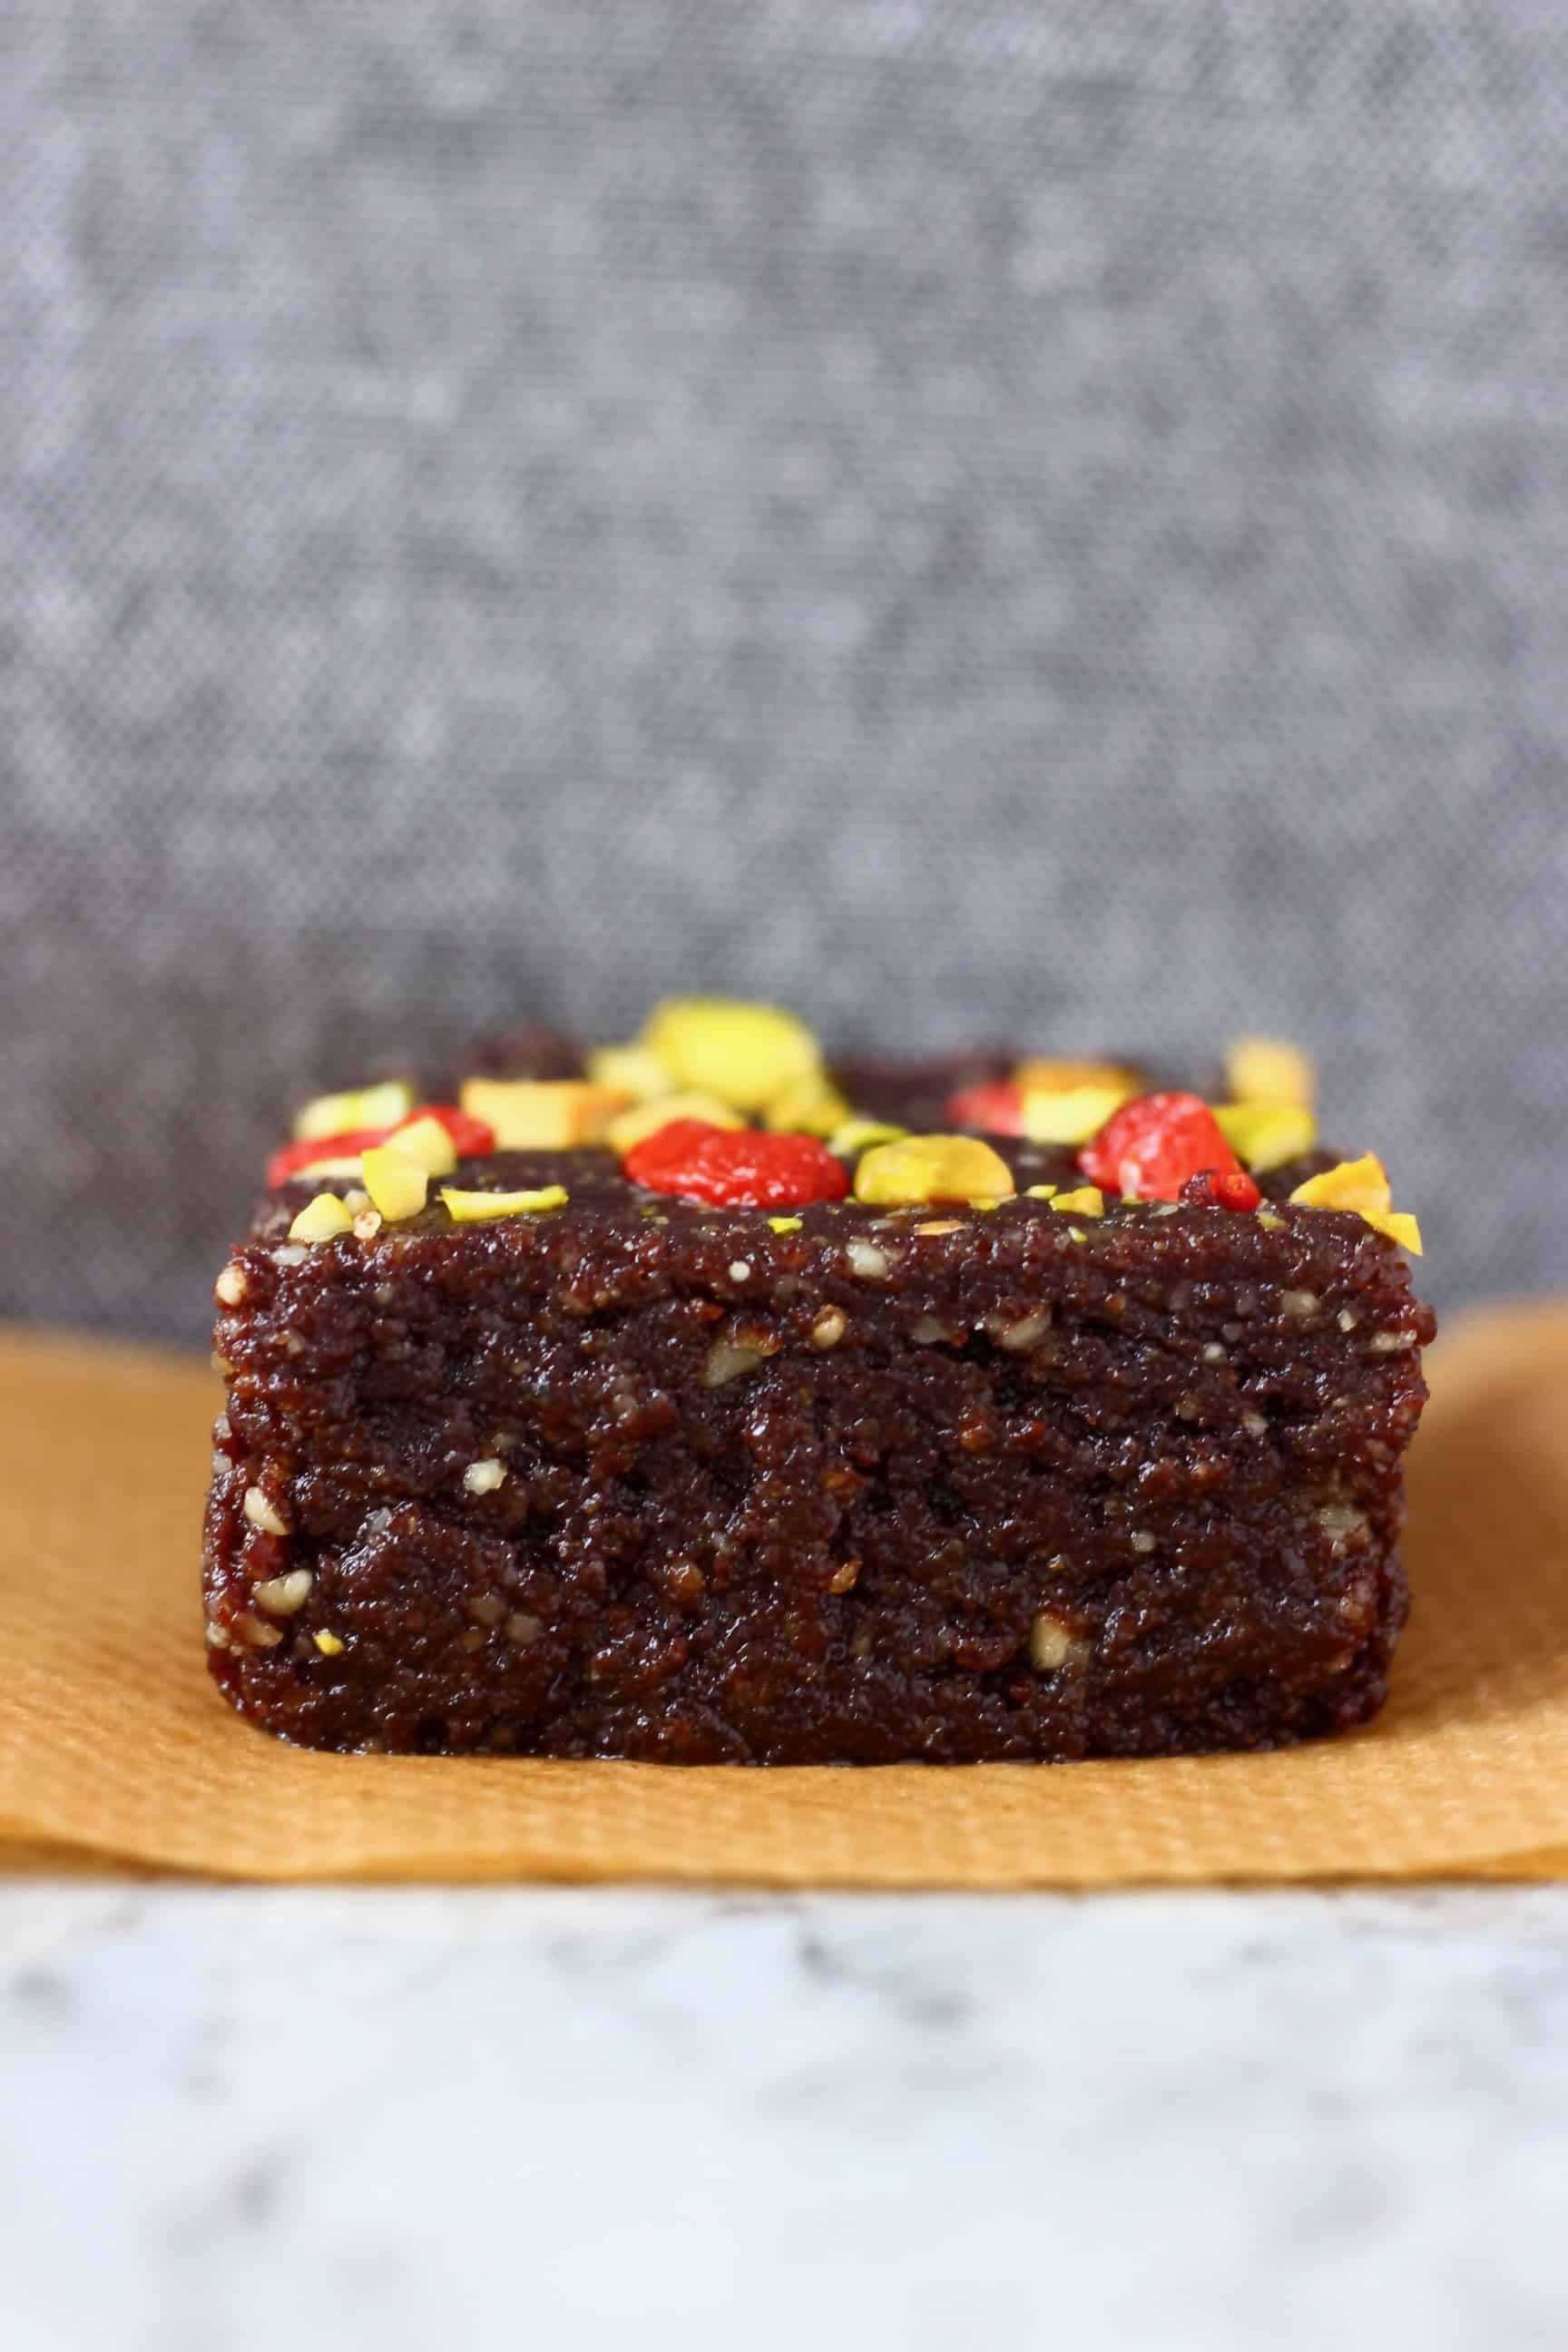 A square no-bake vegan brownie topped with goji berries and chopped pistachios on a piece of baking paper